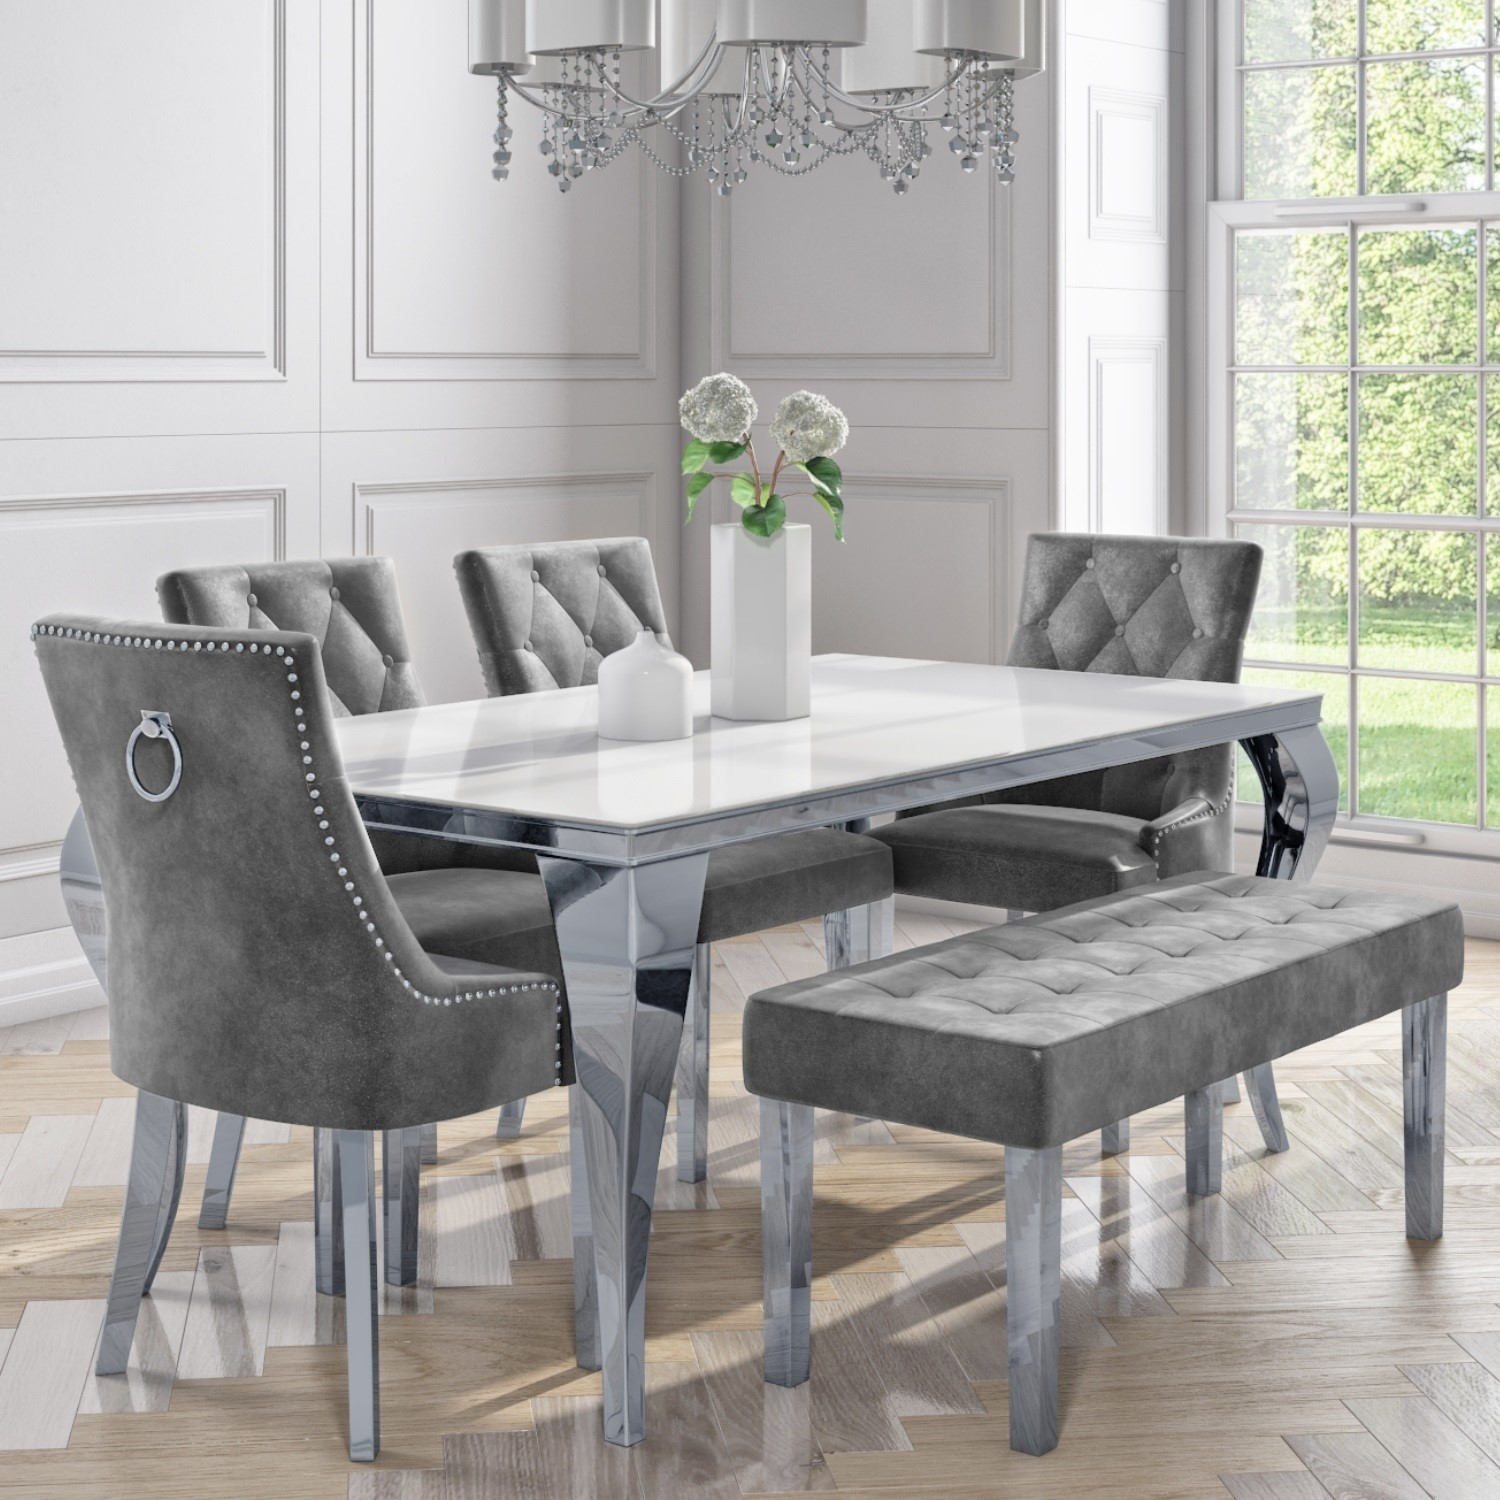 9 Seater Dining Set with White Mirrored Table 9 Grey Velvet Chairs and 9  Bench   Jade Boutique